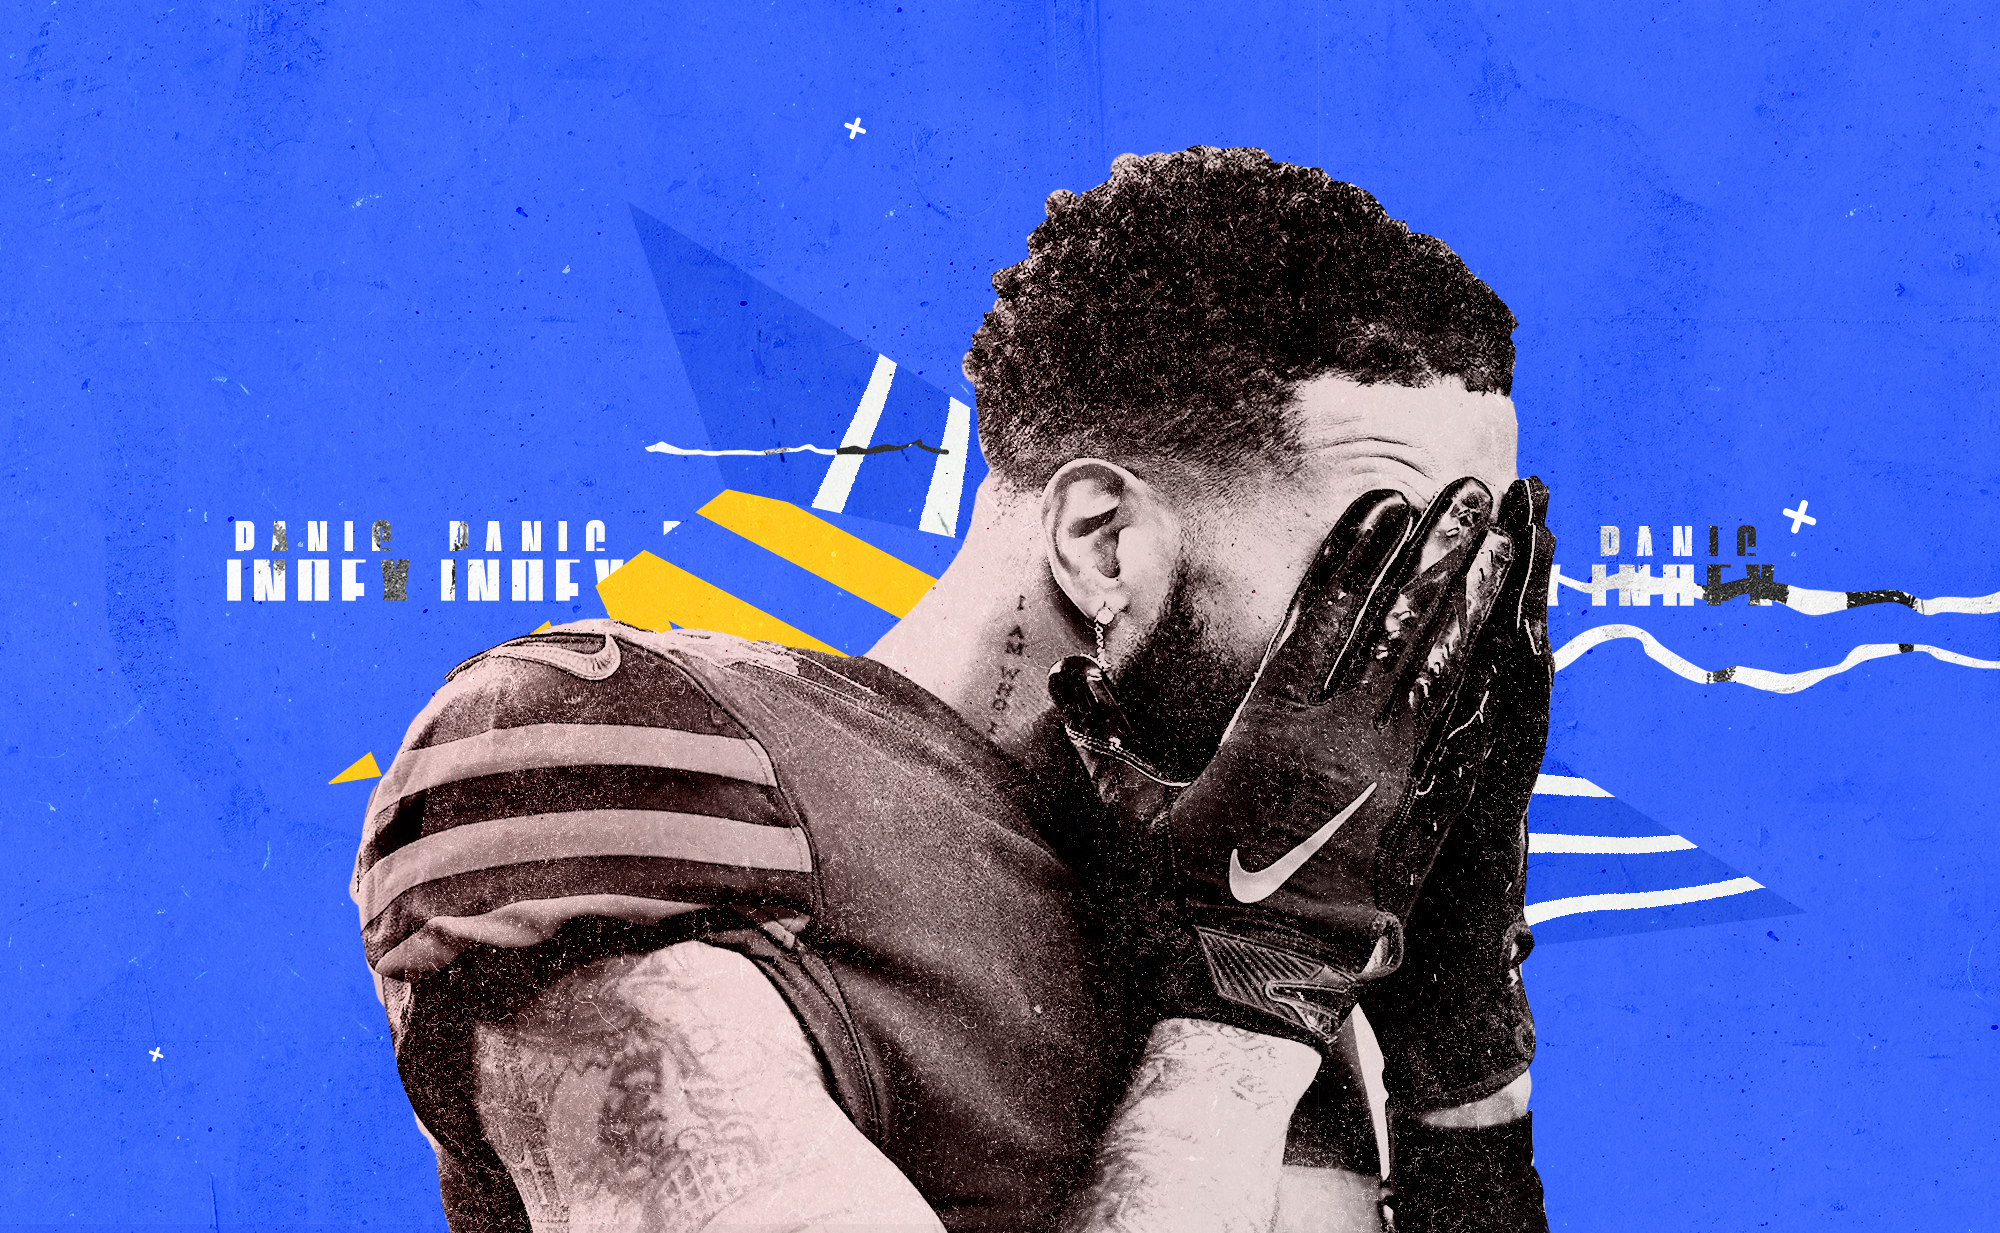 Browns WR Odell Beckham Jr. covers his face with his hands in frustration, with the words PANIC INDEX in the background